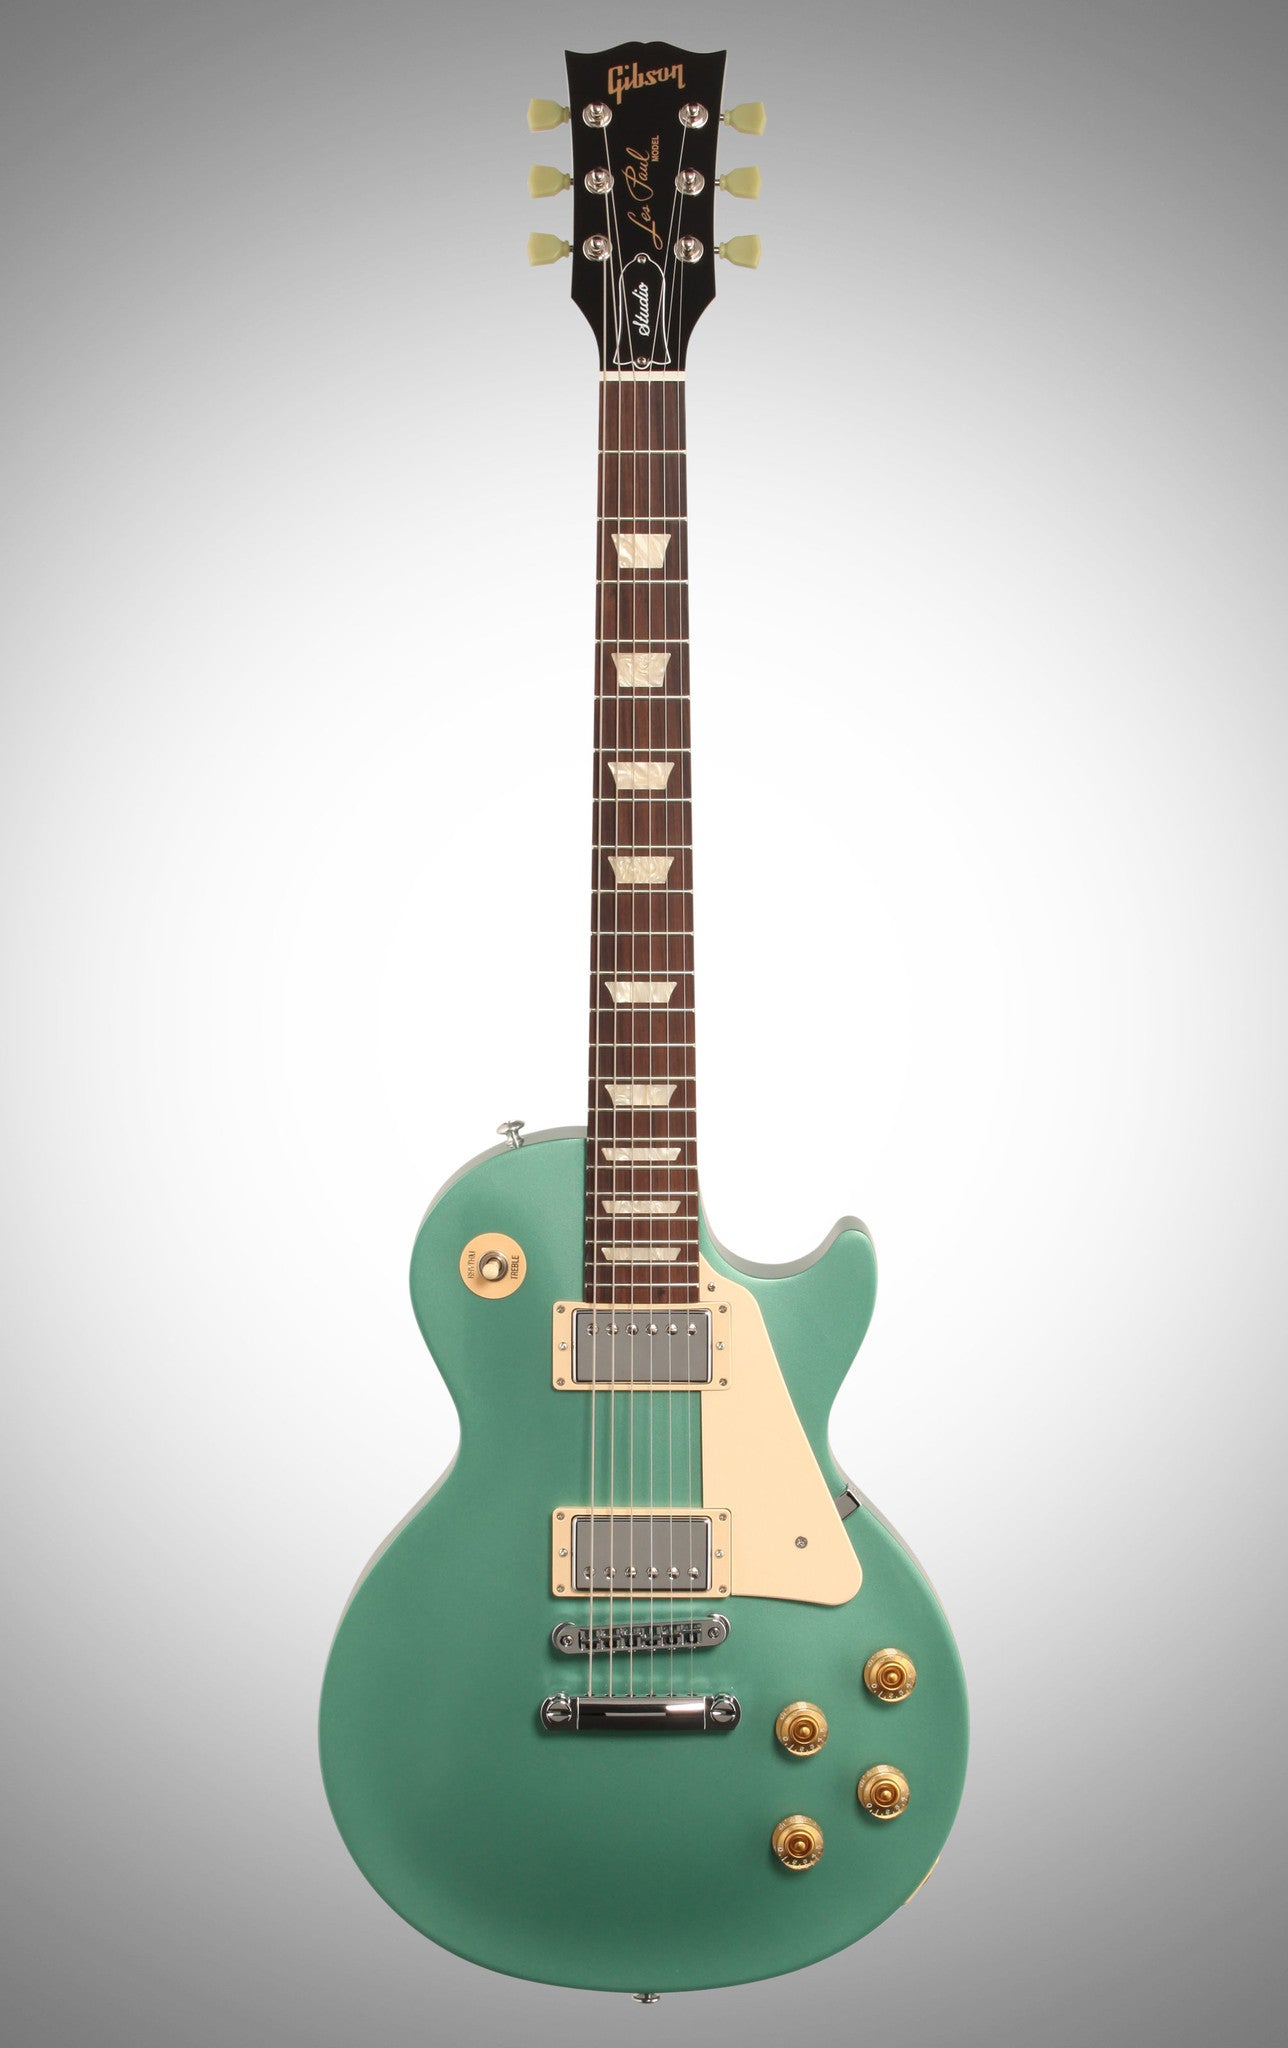 Gibson 2016 Les Paul Studio T Electric Guitar (with Case), Inverness Green Gibson - HIENDGUITAR.COM